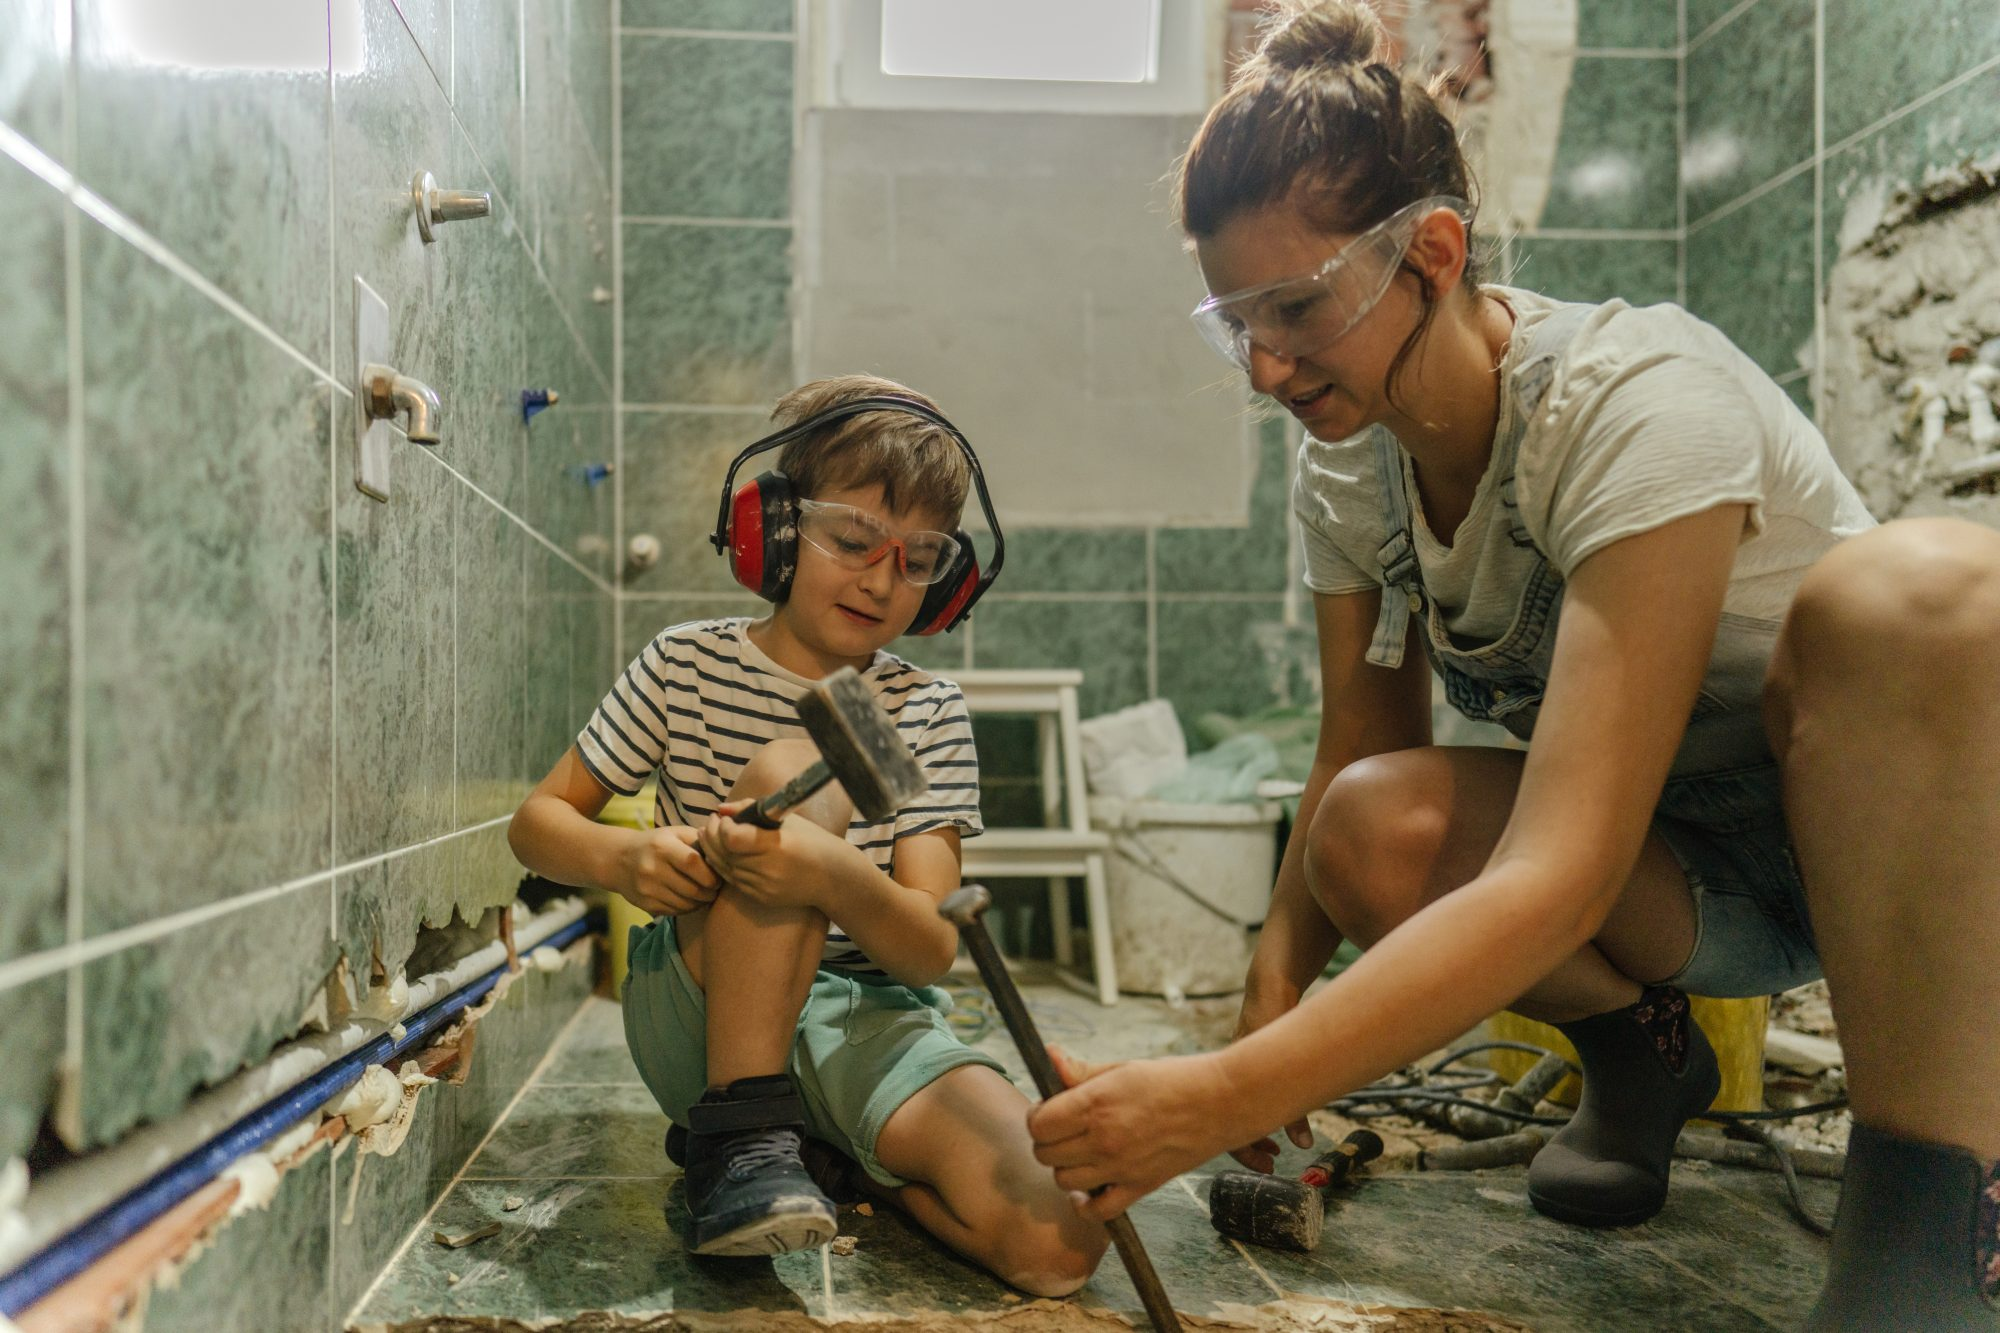 mother and son renovating bathroom tile